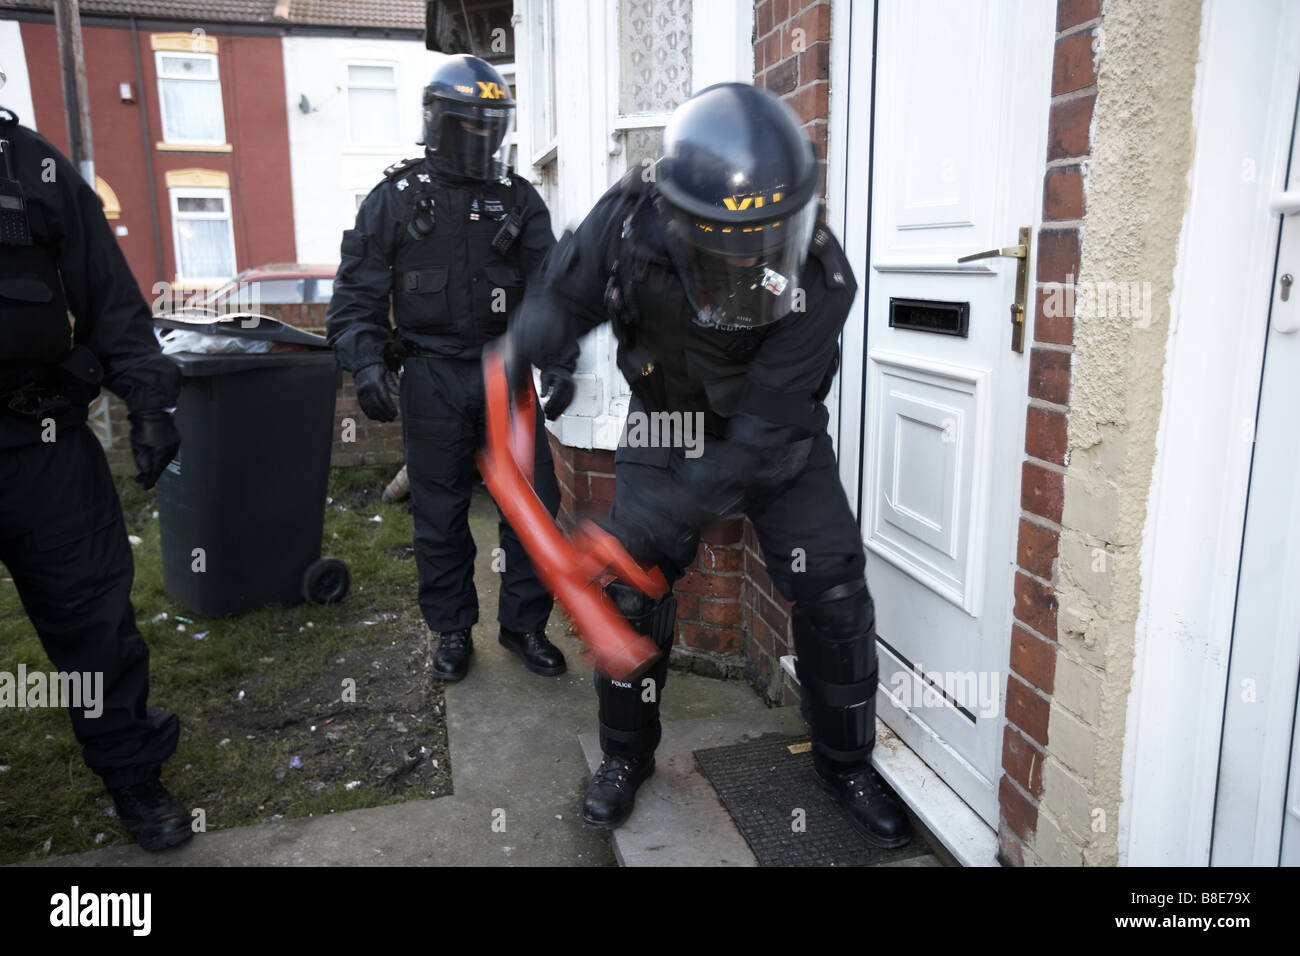 Officers from the Bransholme Neighbourhood Policing Team use a battering ram to enter a property to search for drugs, - Stock Image